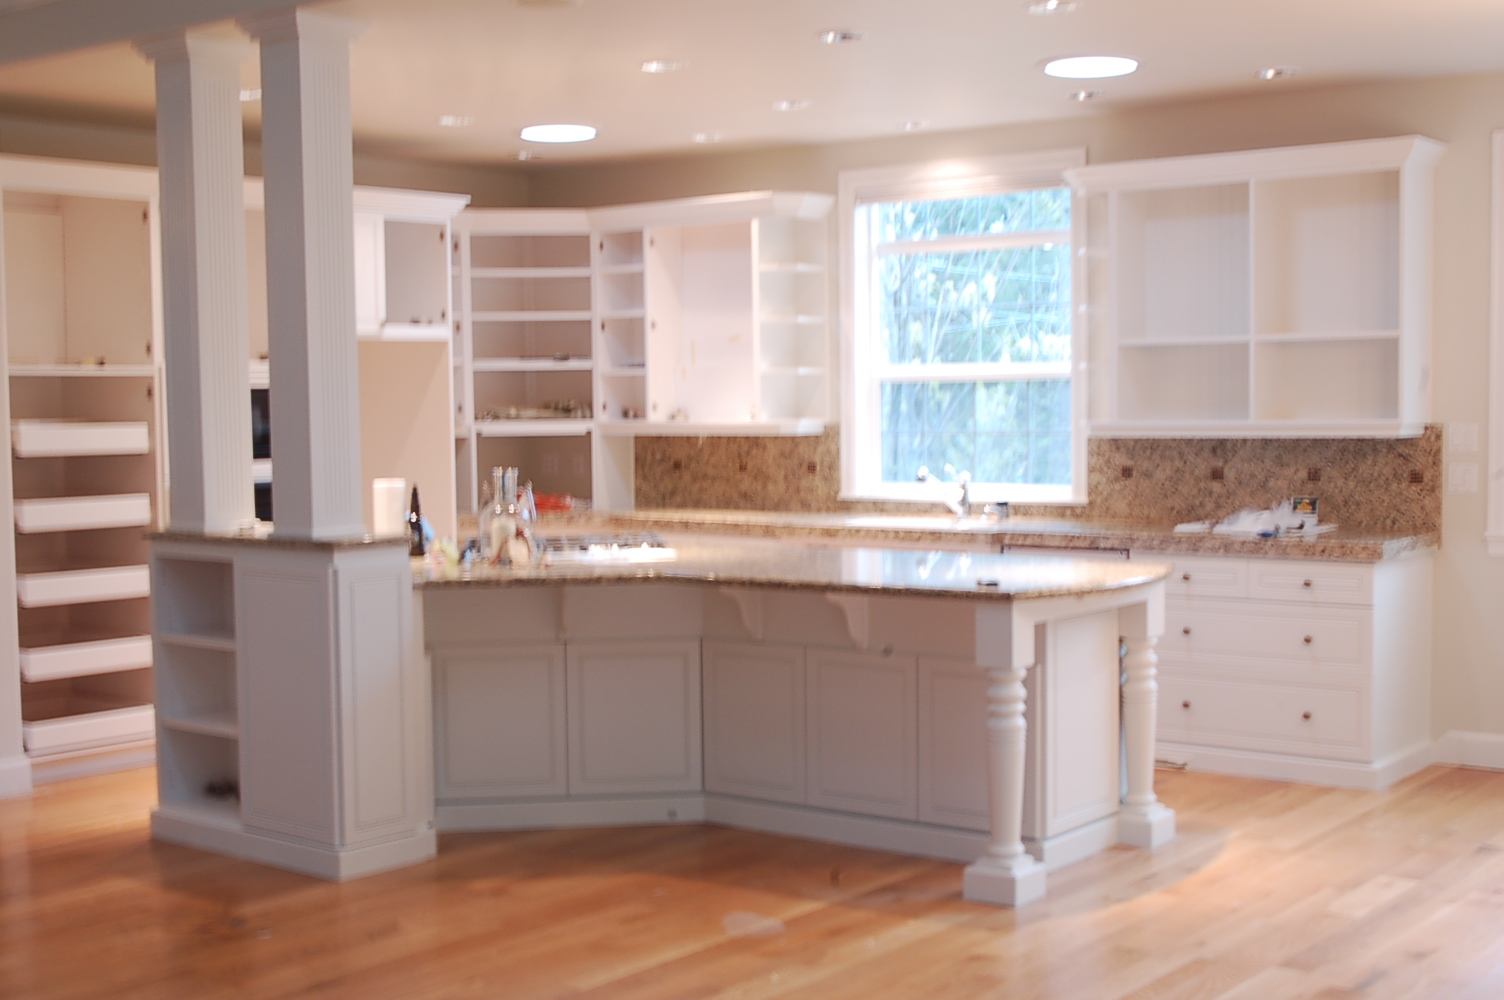 Painting Kitchen Cabinets Cost Curtains Valances To Paint Professionally